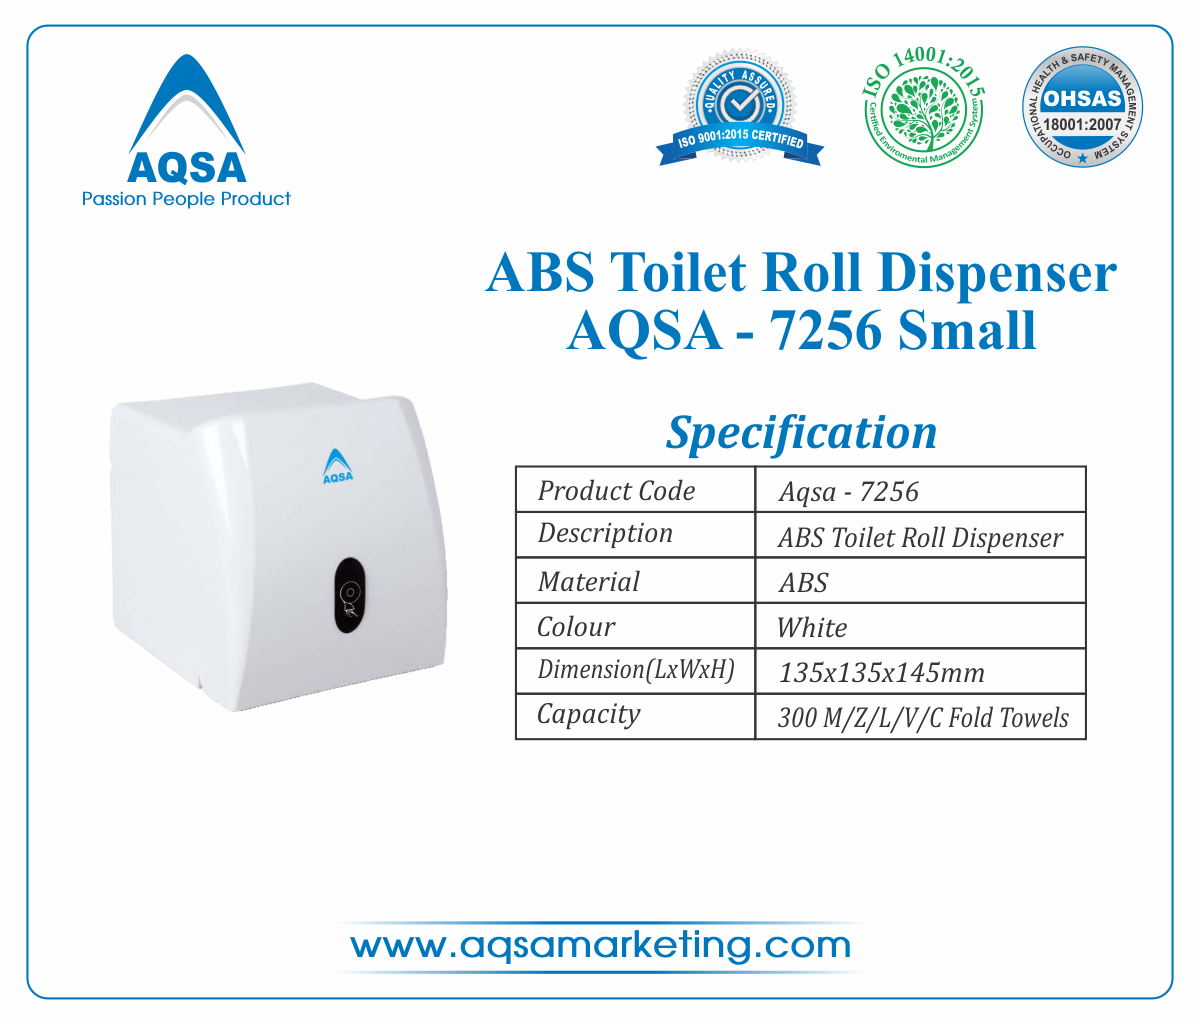 ABS Toilet Roll Dispensers AQSA-7256 Small image